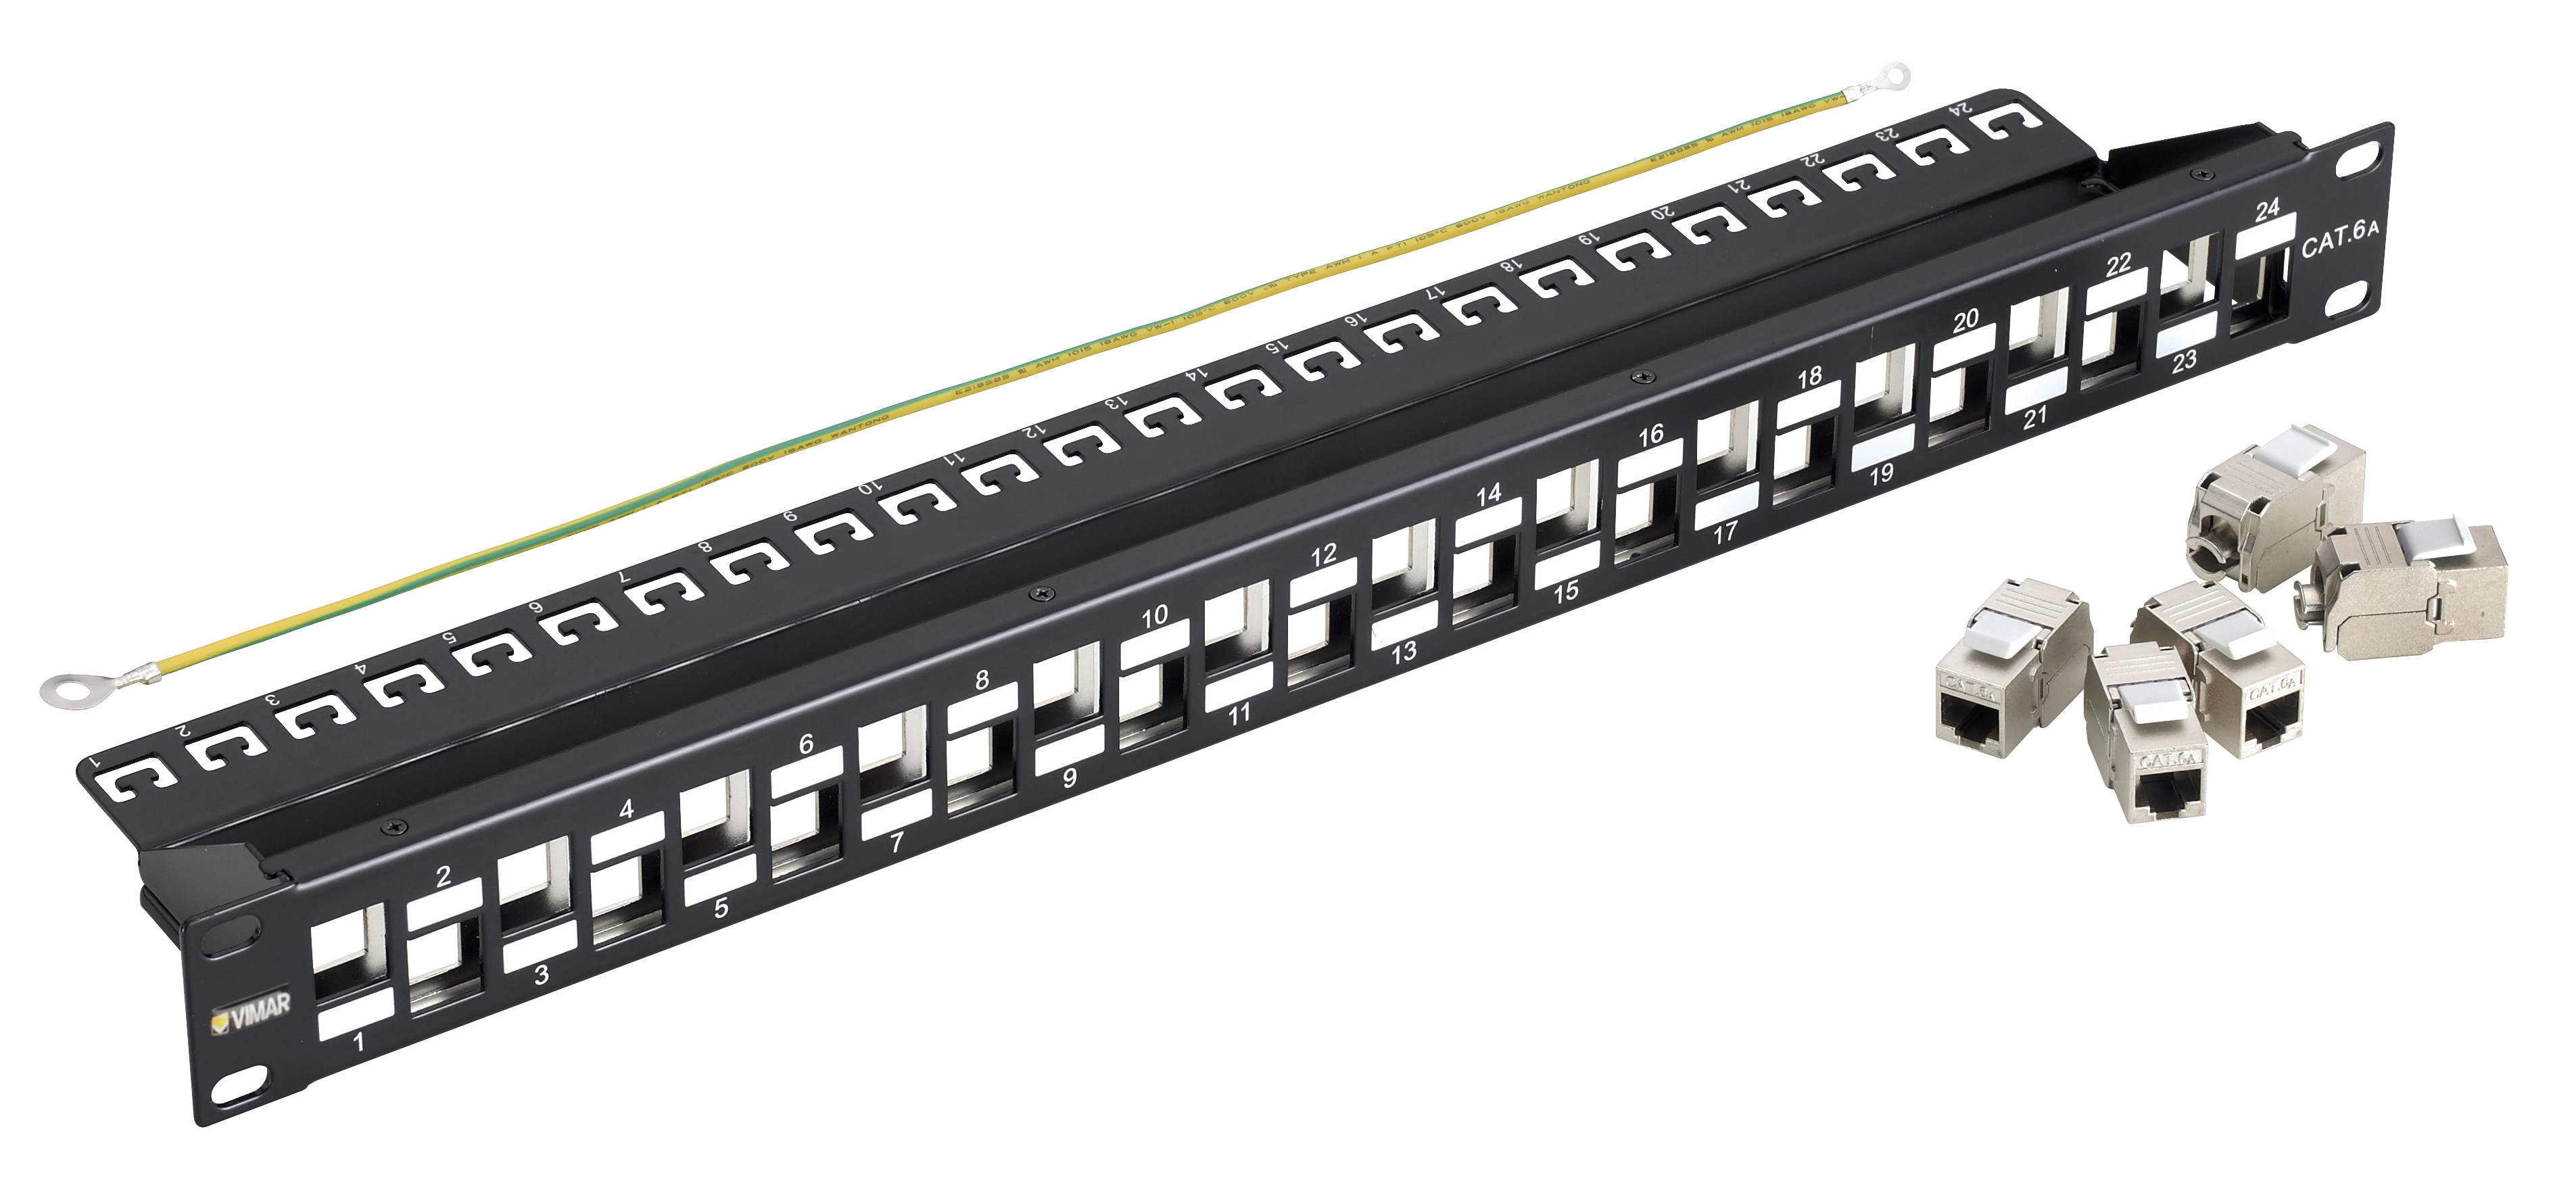 Patch panels: Patch panel - 24 RJ45 Cat6A FTP conn.1u - 03024.9 ...